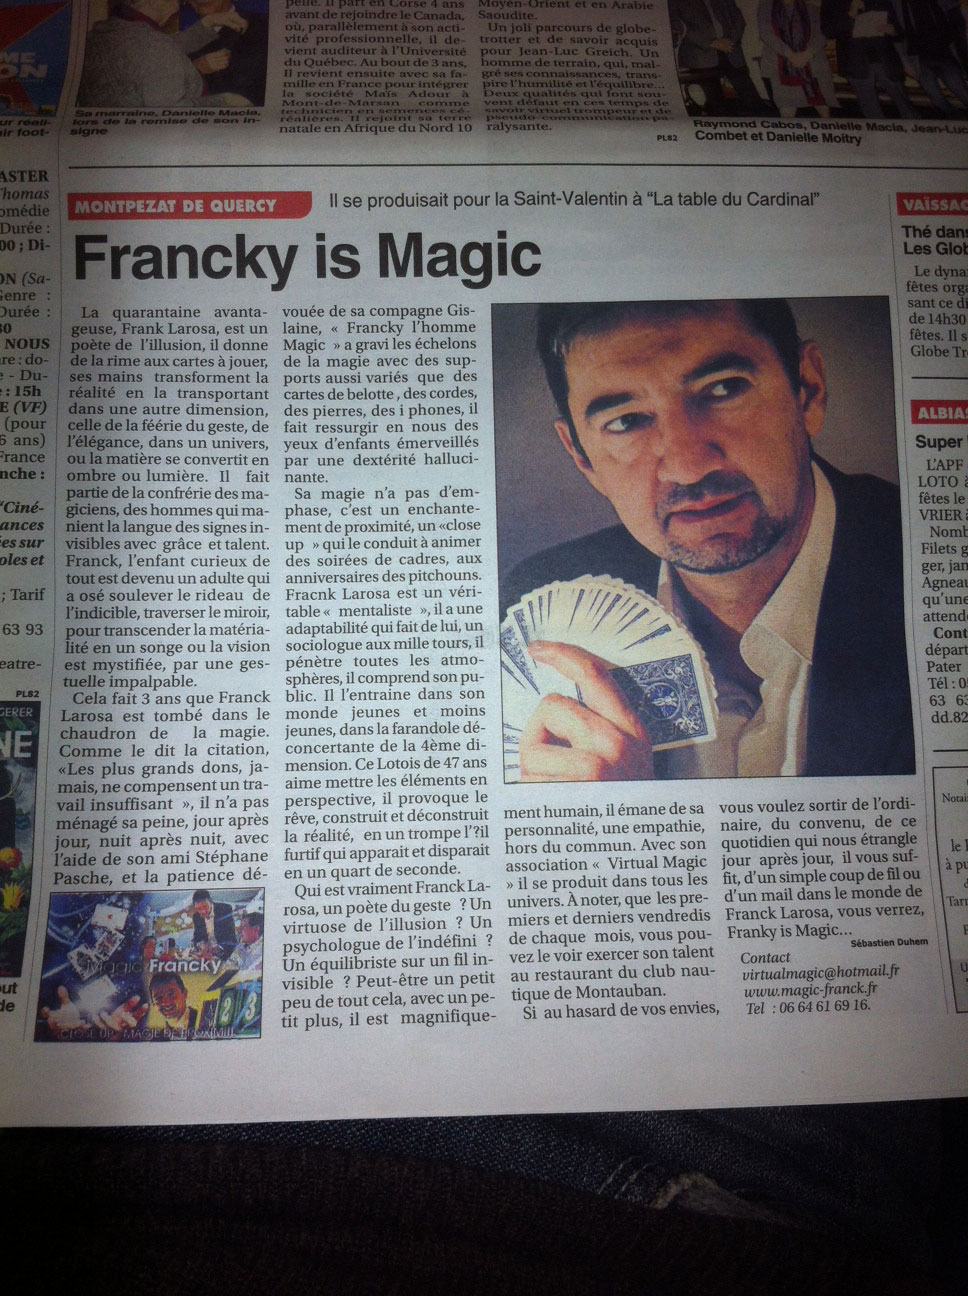 MAGIC FRANCKY DANS LA PRESSE TOULOUSE